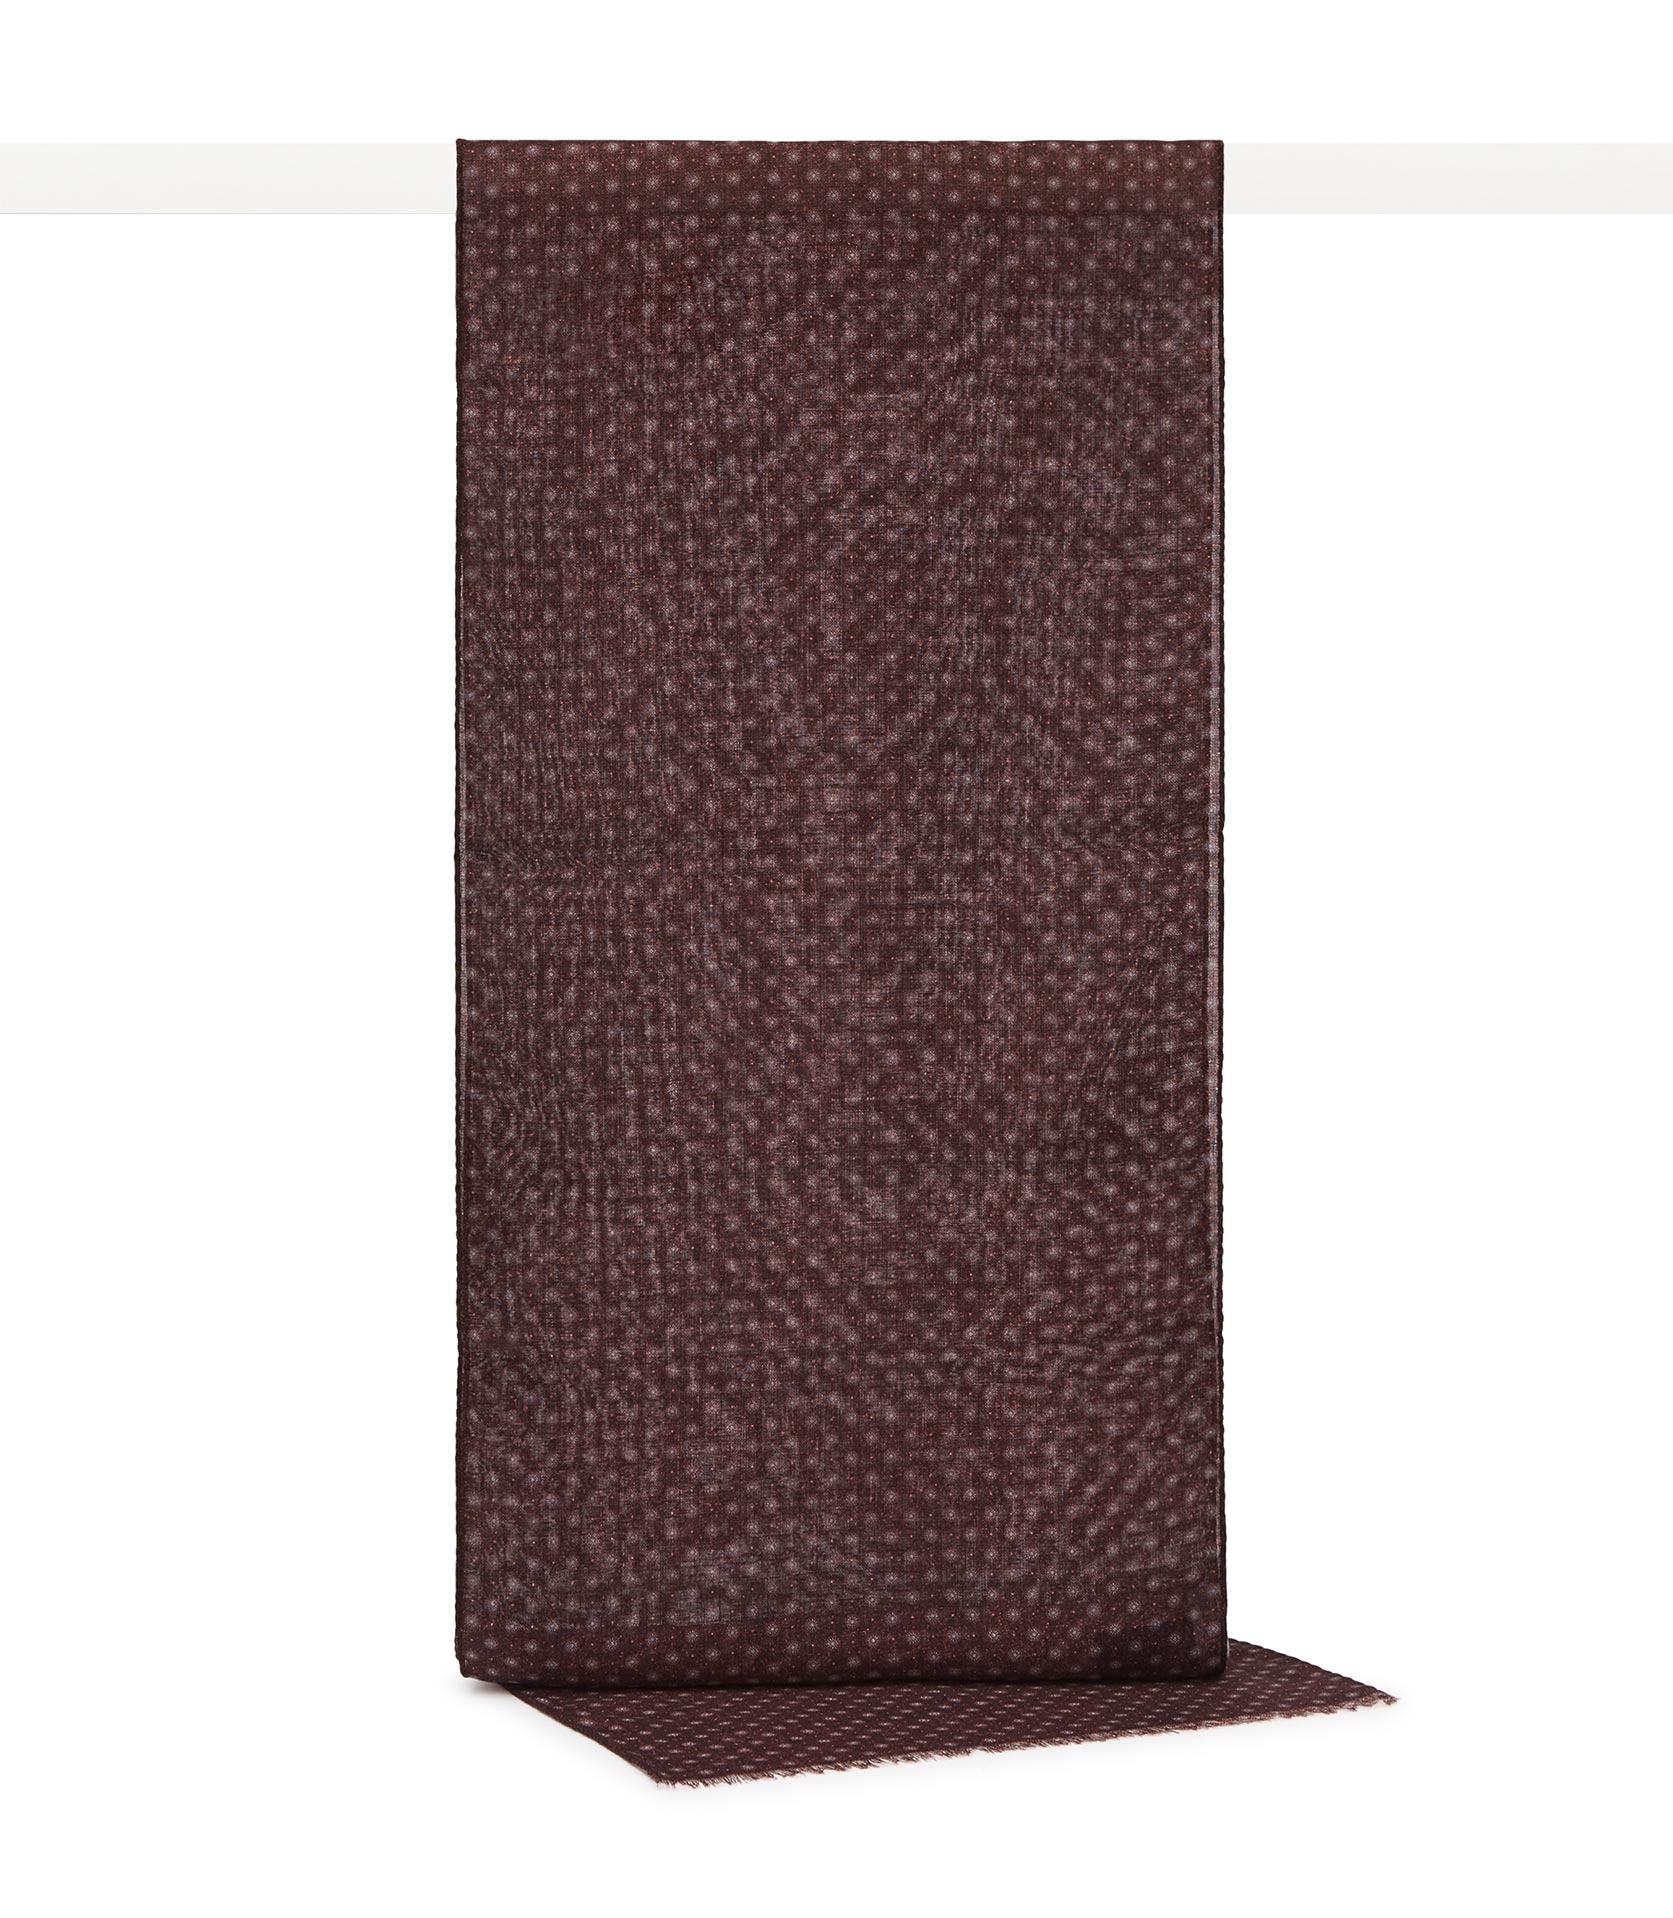 Reiss Burgundy Owens Wool Polka Dot Scarf